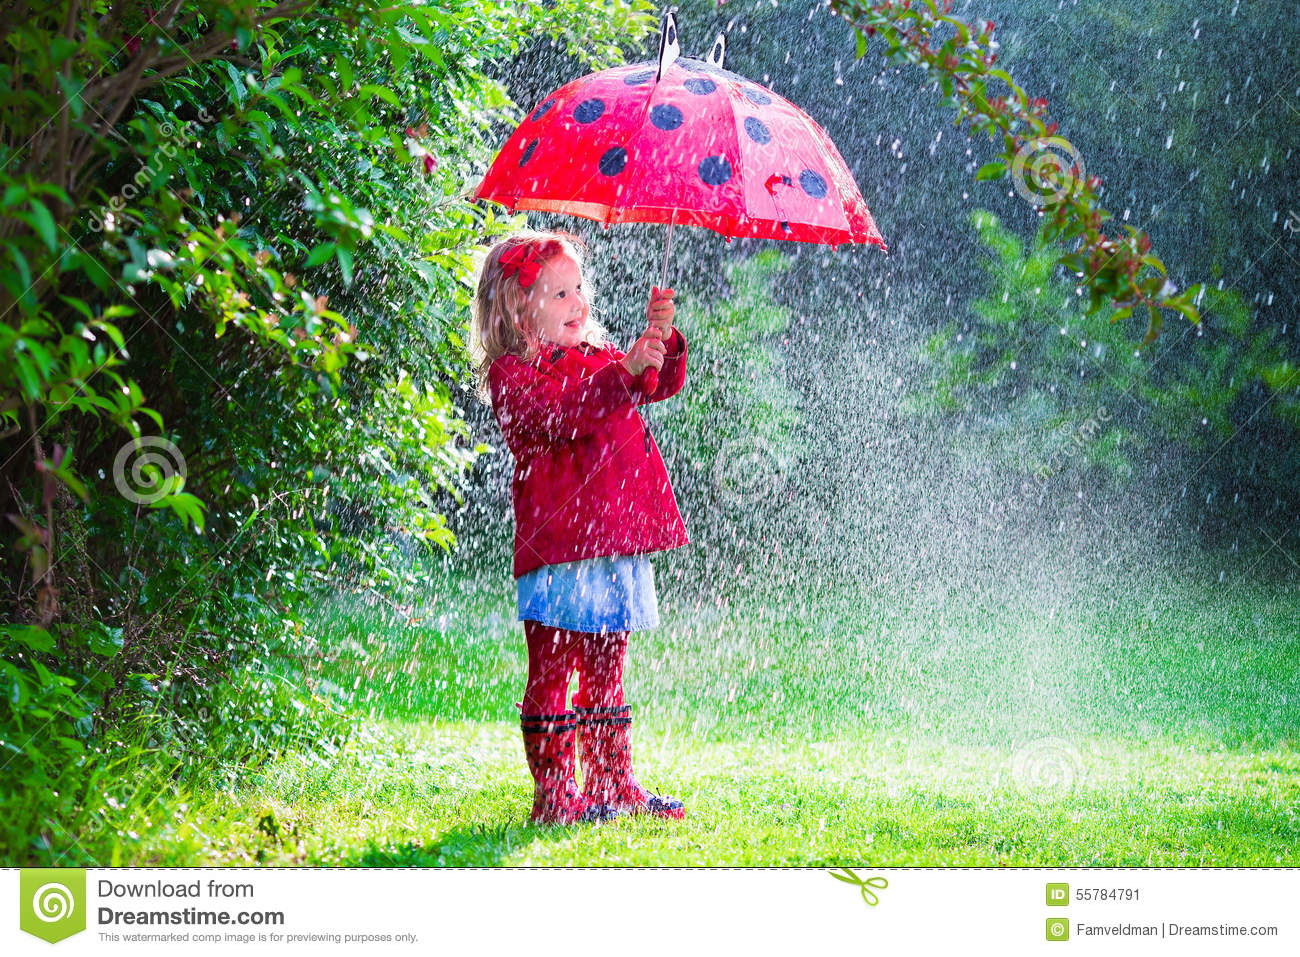 Rainy Fall Day Wallpaper Little Girl With Umbrella Playing In The Rain Stock Photo